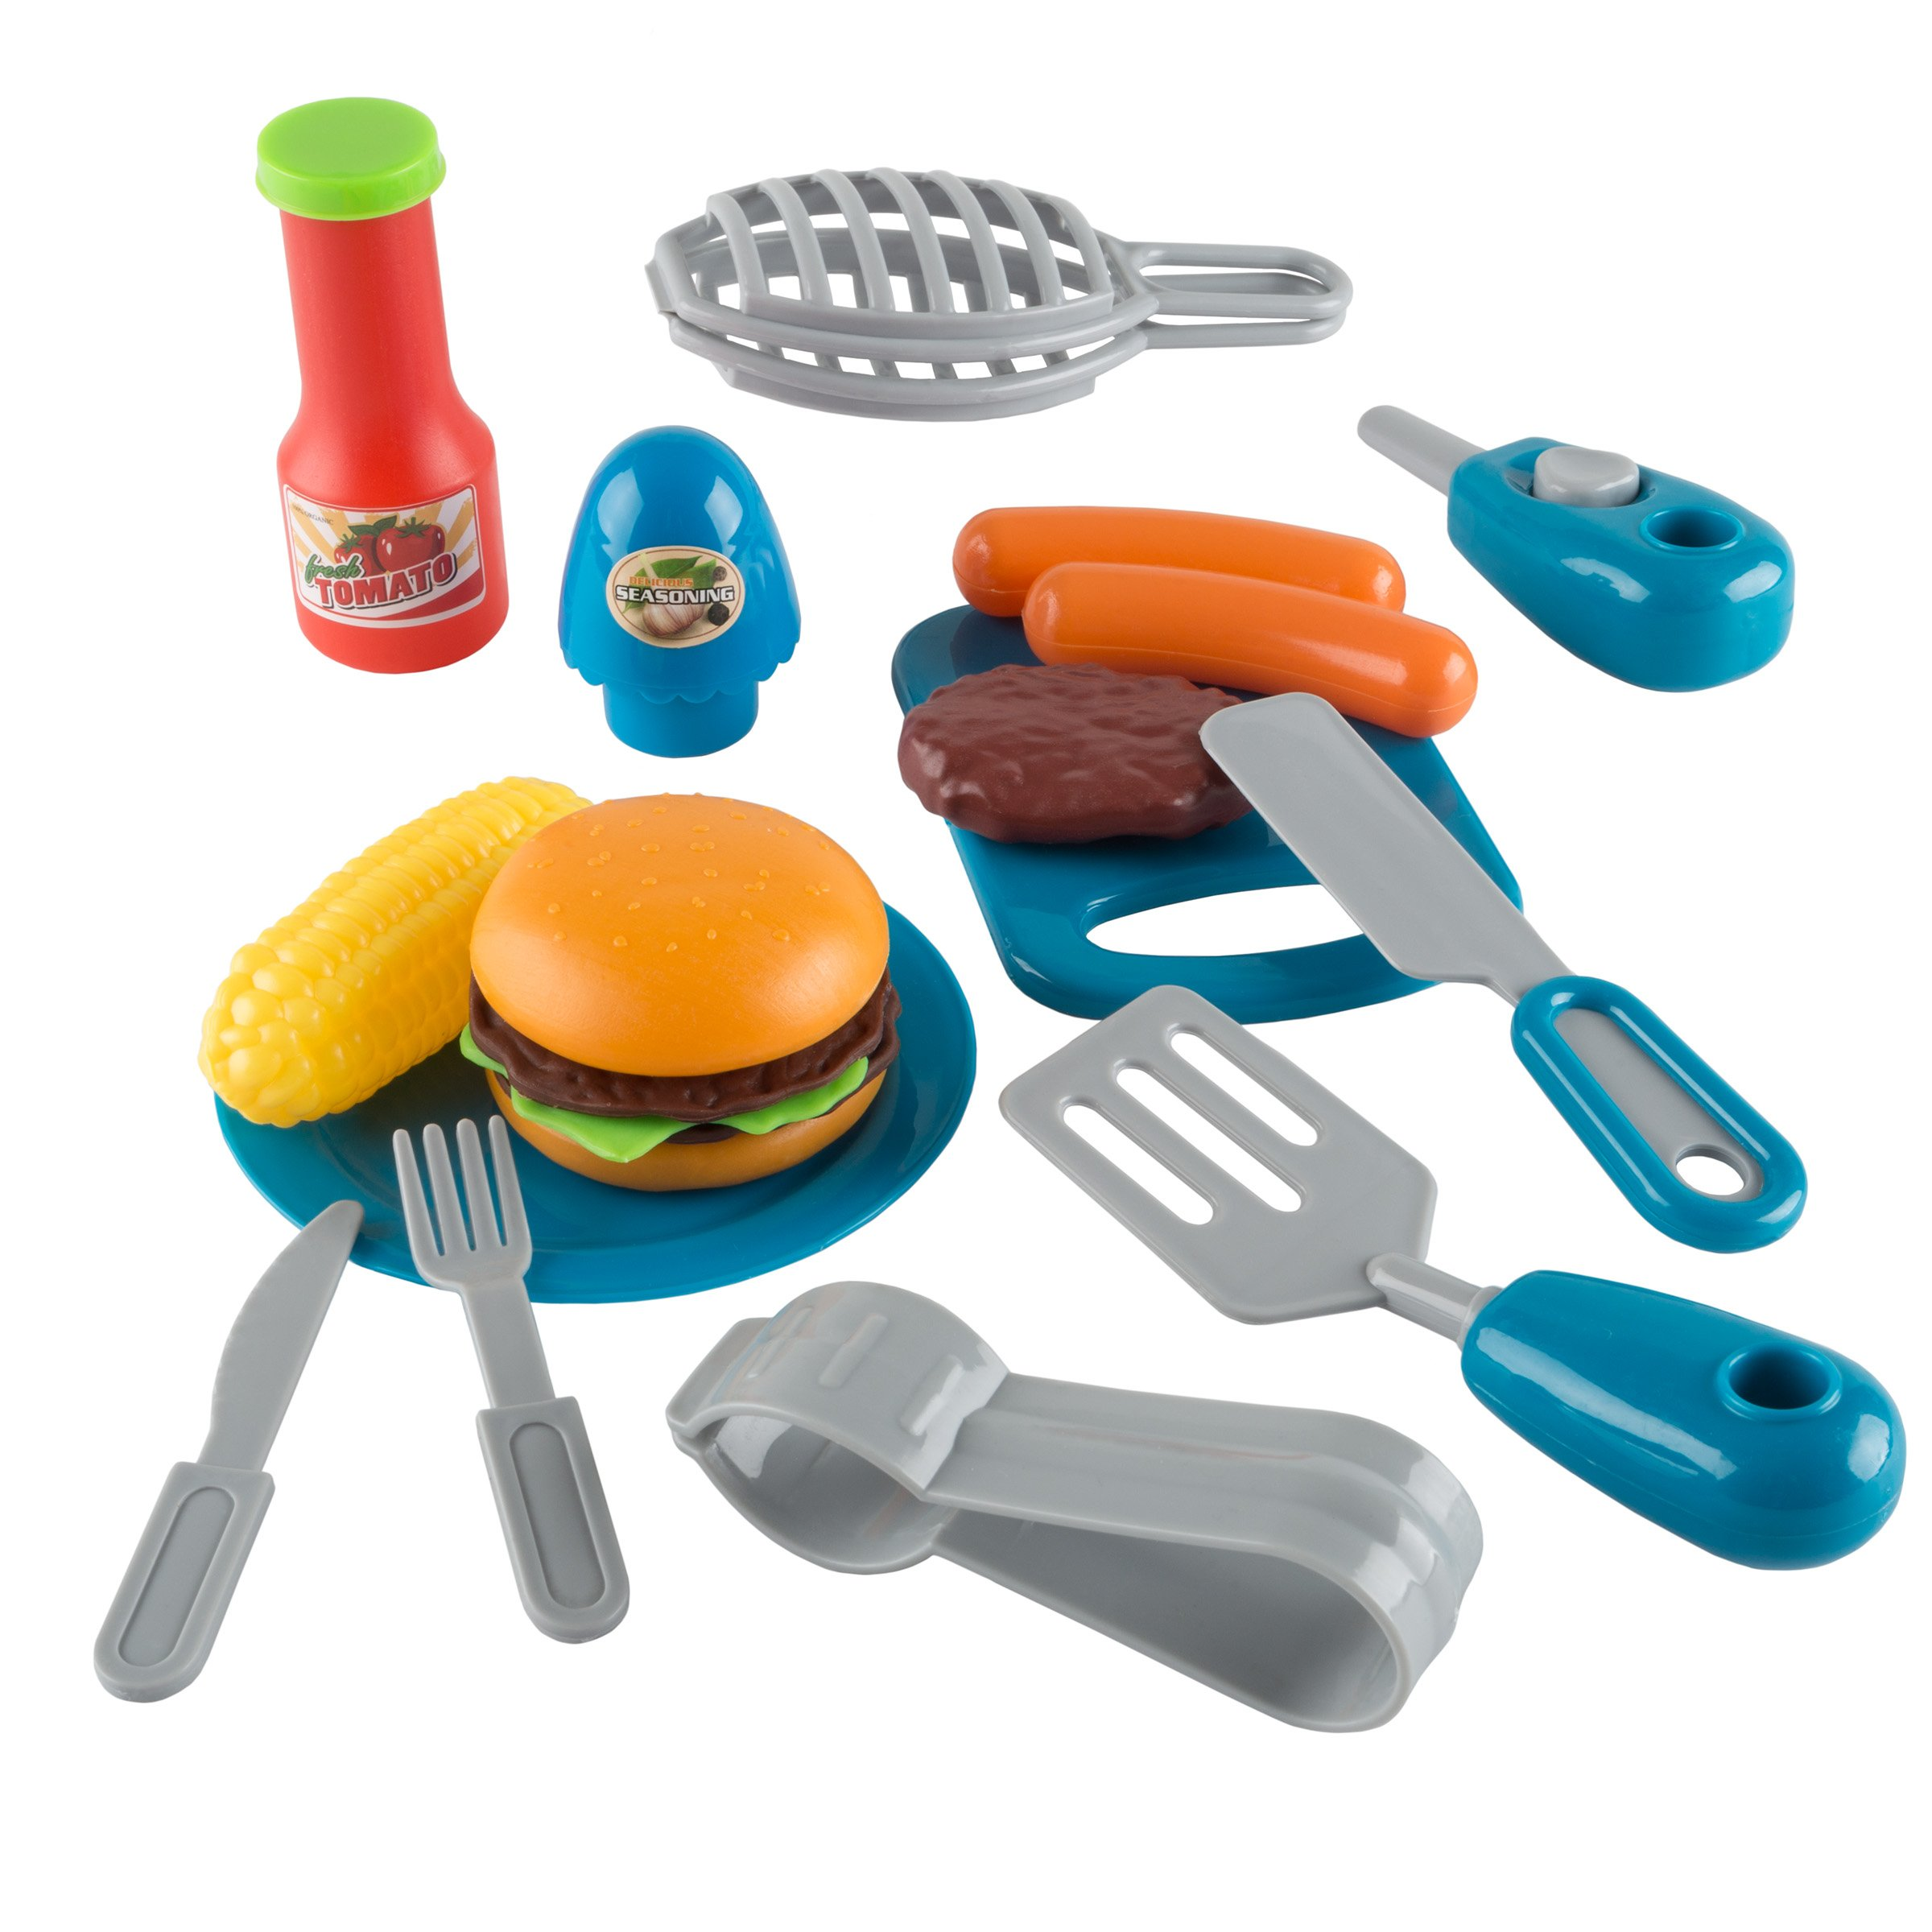 BBQ Grill Toy Set- Kids Dinner Playset with Realistic Sounds and Grate Lights- Includes Barbecue Food and Accessories, Pretend Kitchen by Hey! Play! (Image #6)